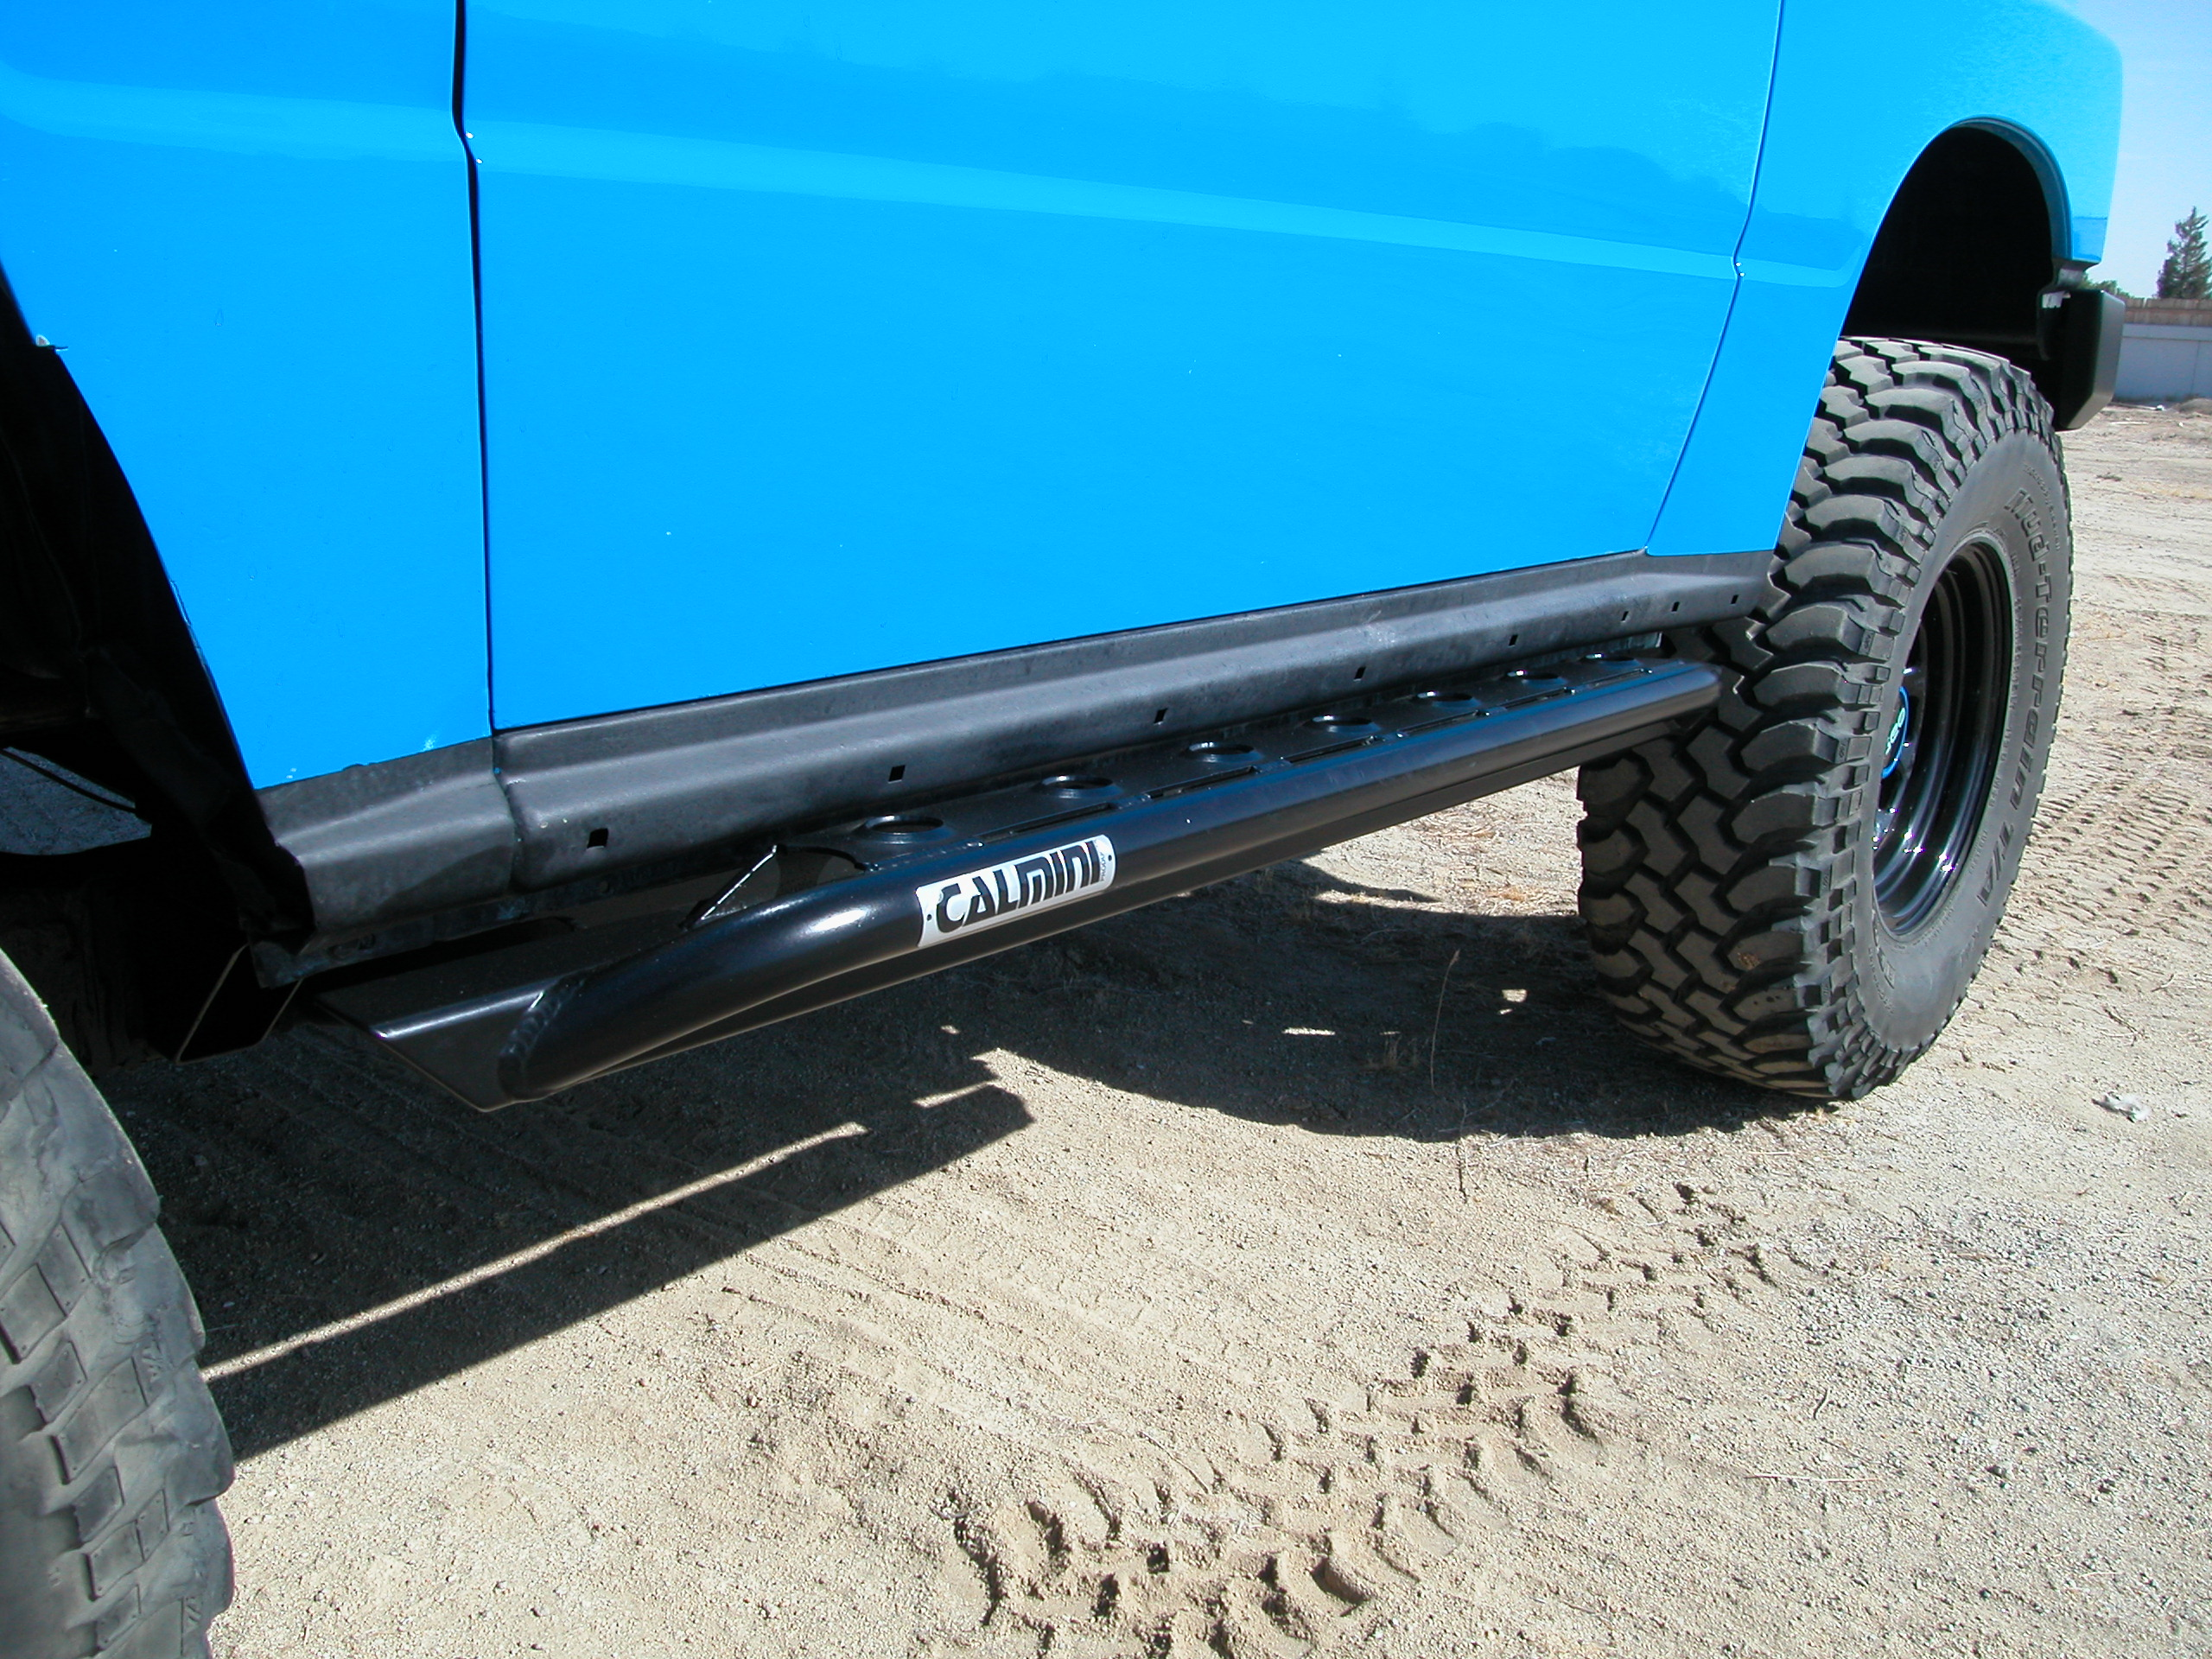 Calmini Suspension Lift Kits And Accessories For Nissan